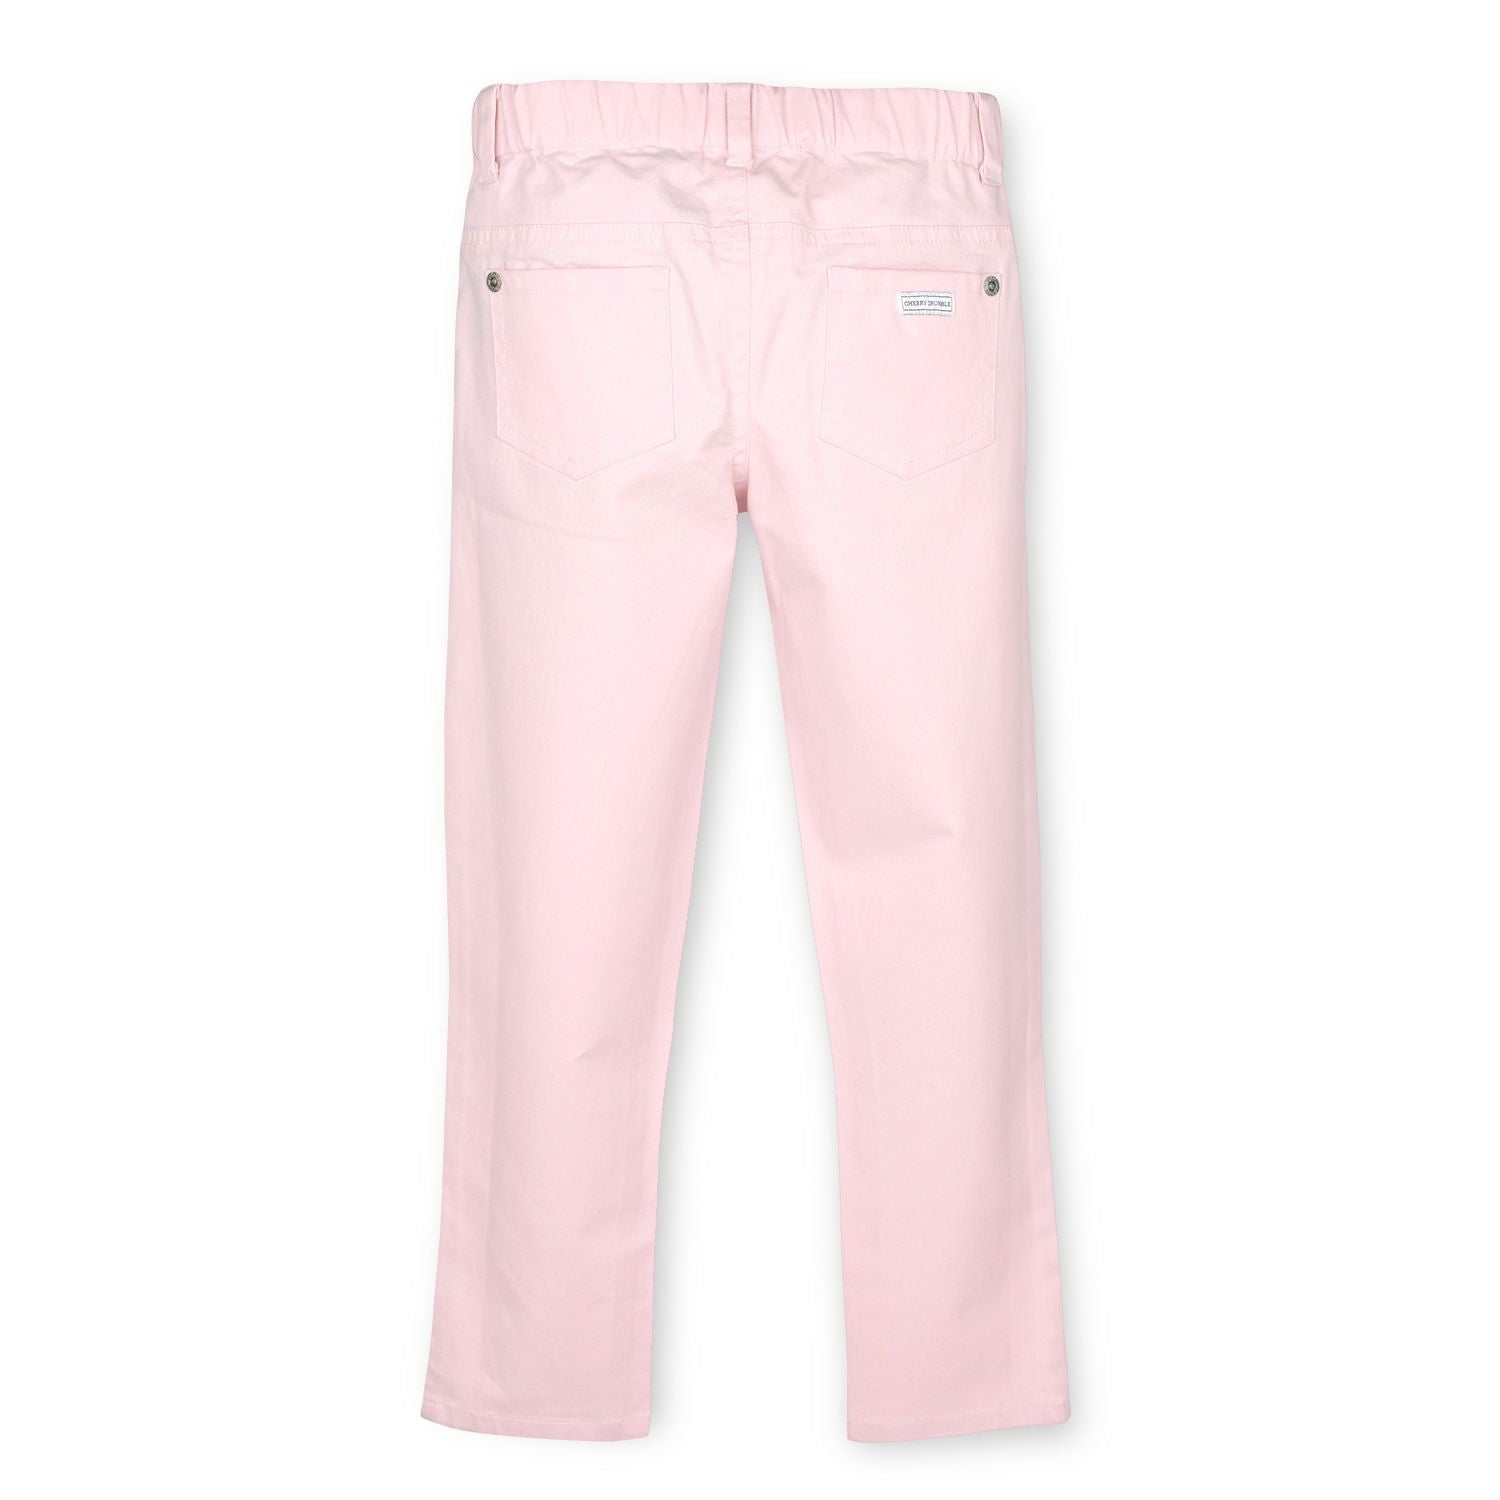 Soft Cotton Twill Chinos for Boys